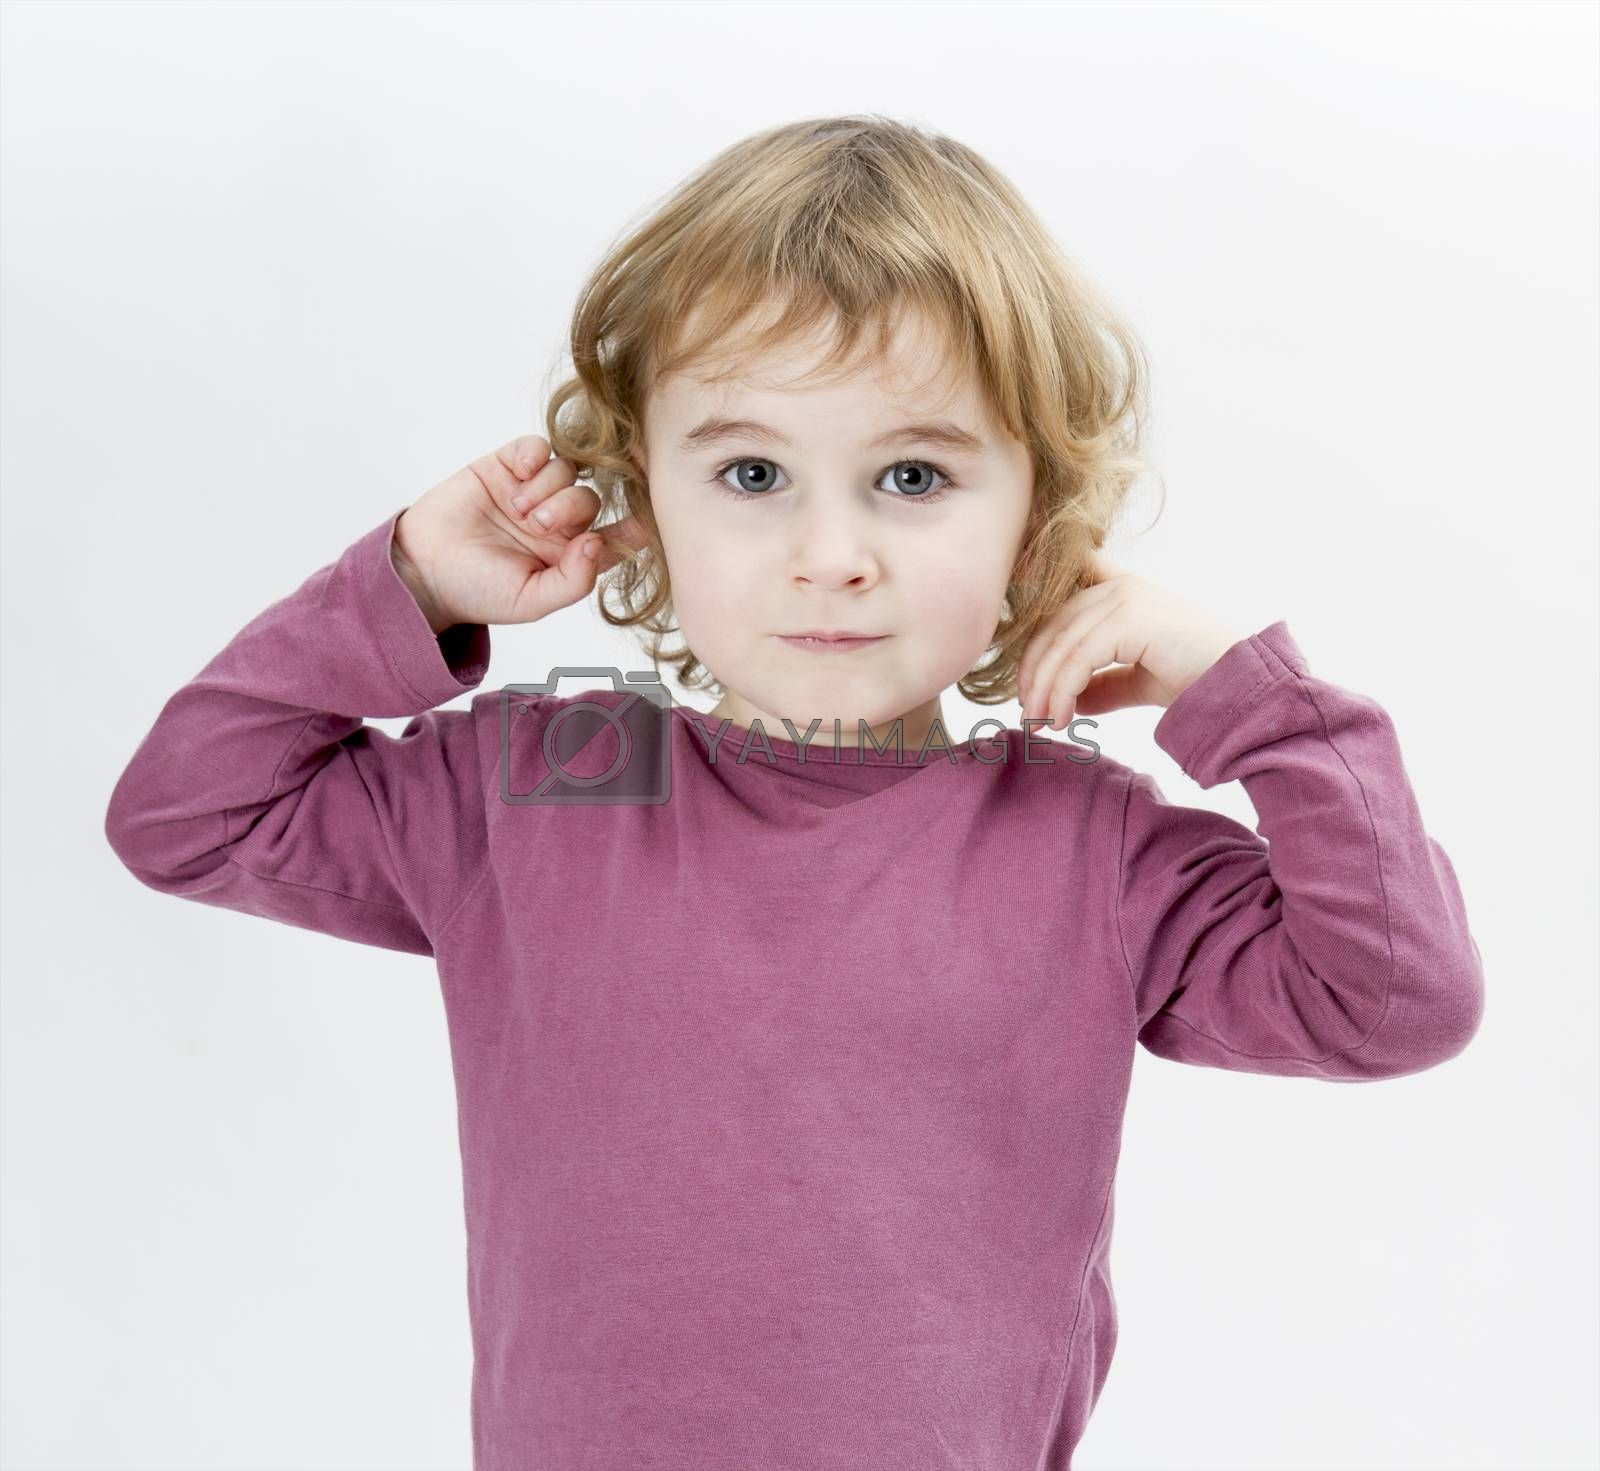 Royalty free image of hear no evil by gewoldi